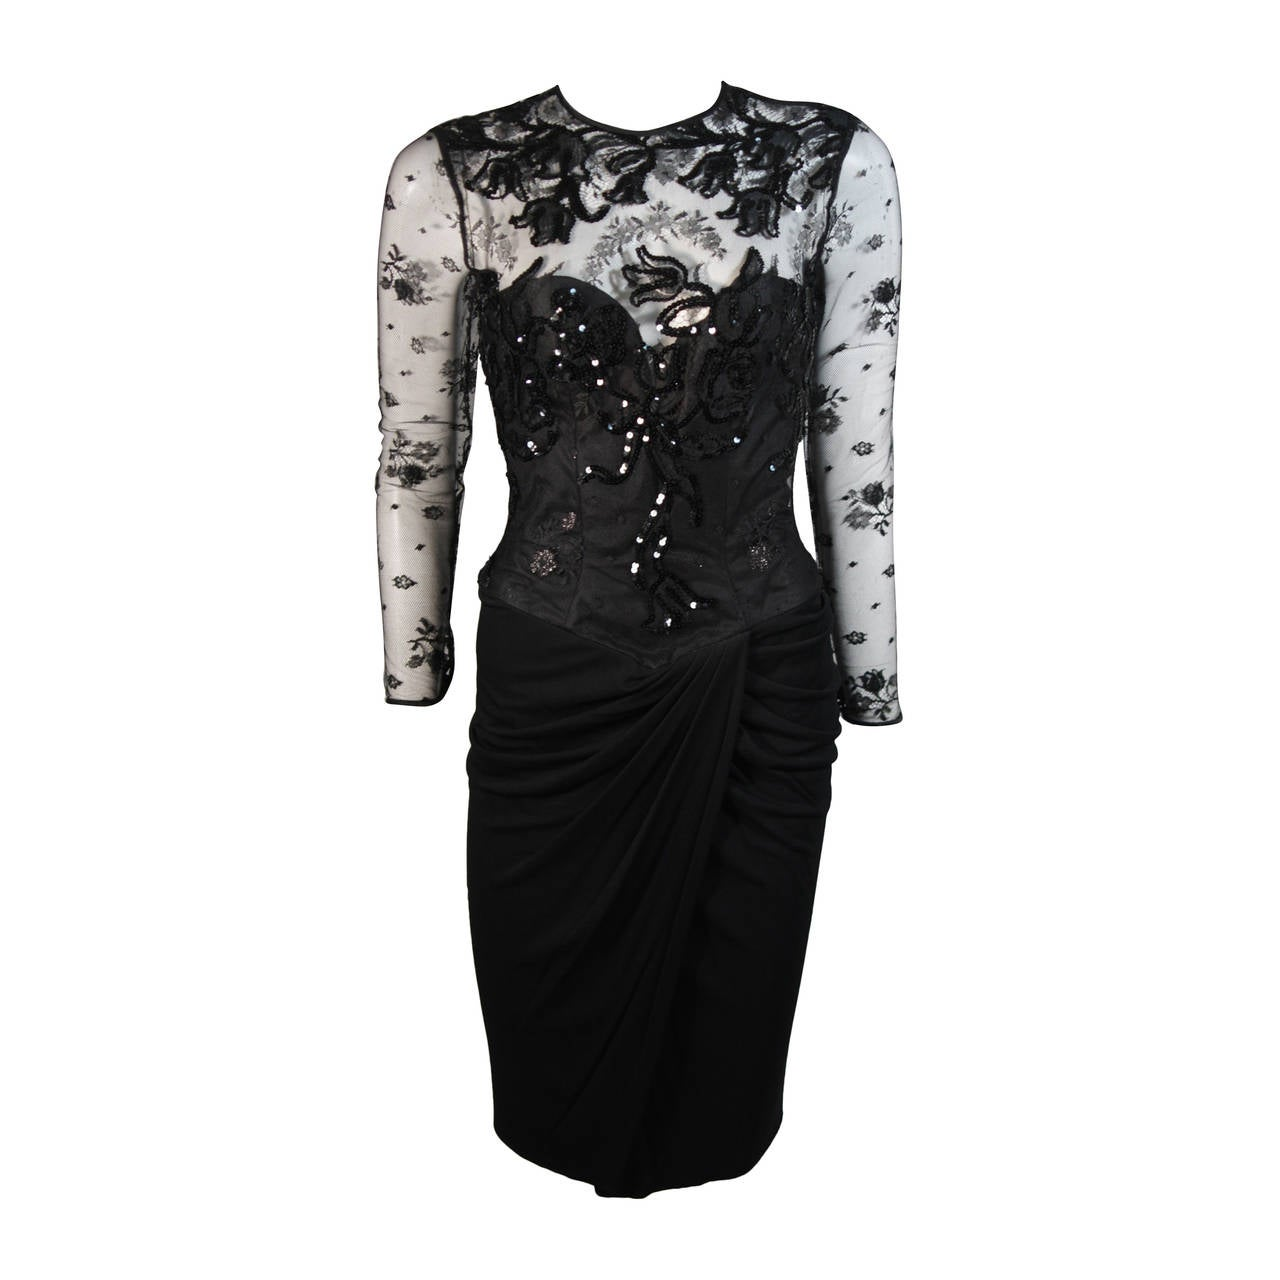 Vicky Tiel Black Lace Cocktail Dress with Draped Jersey Skirt Size Small